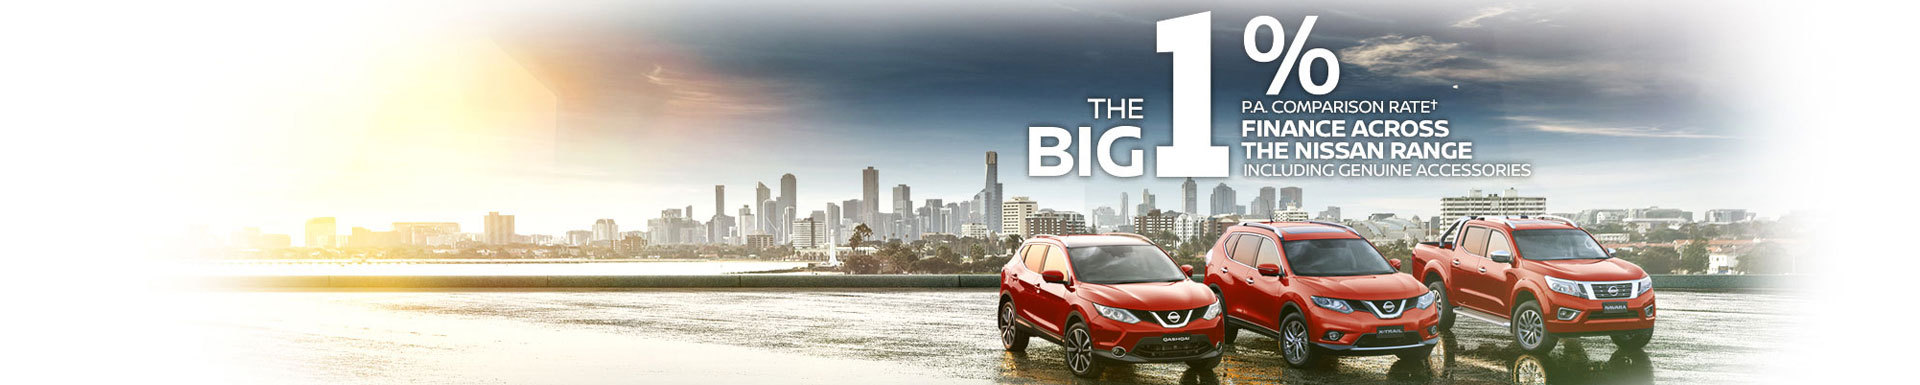 The Big 1% Comparisson Rate Finance Across The Nissan Range